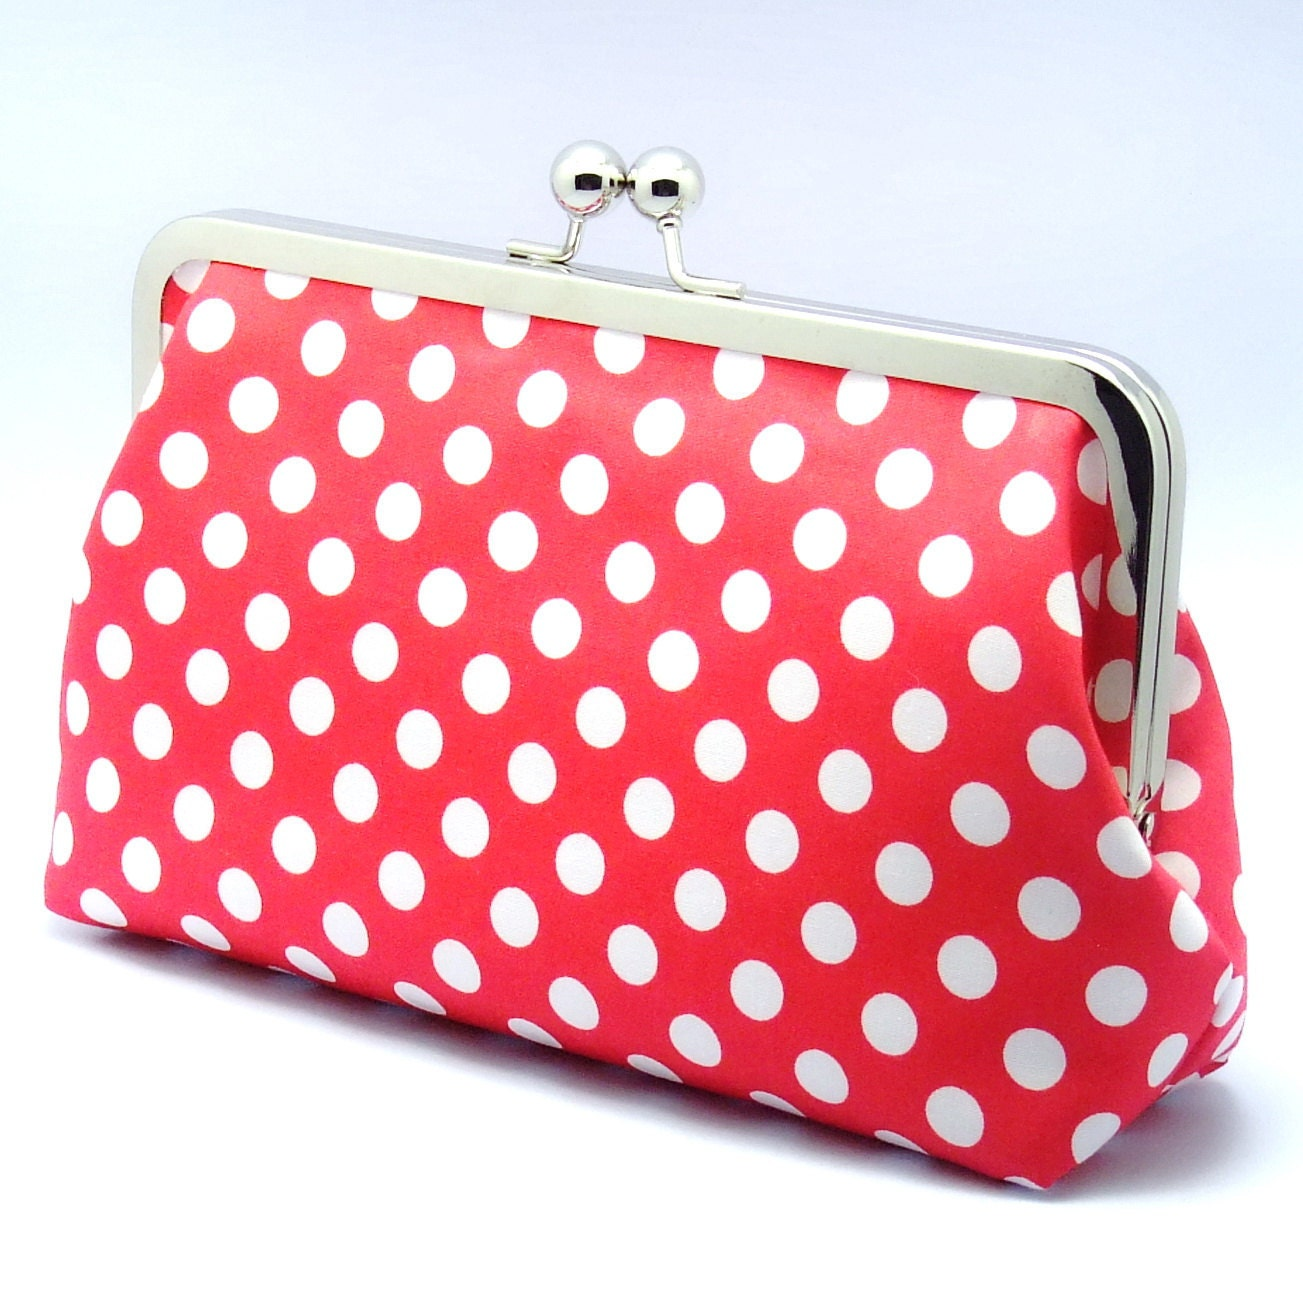 White Polka Dots in Red- Large Clutch Purse (L-040)